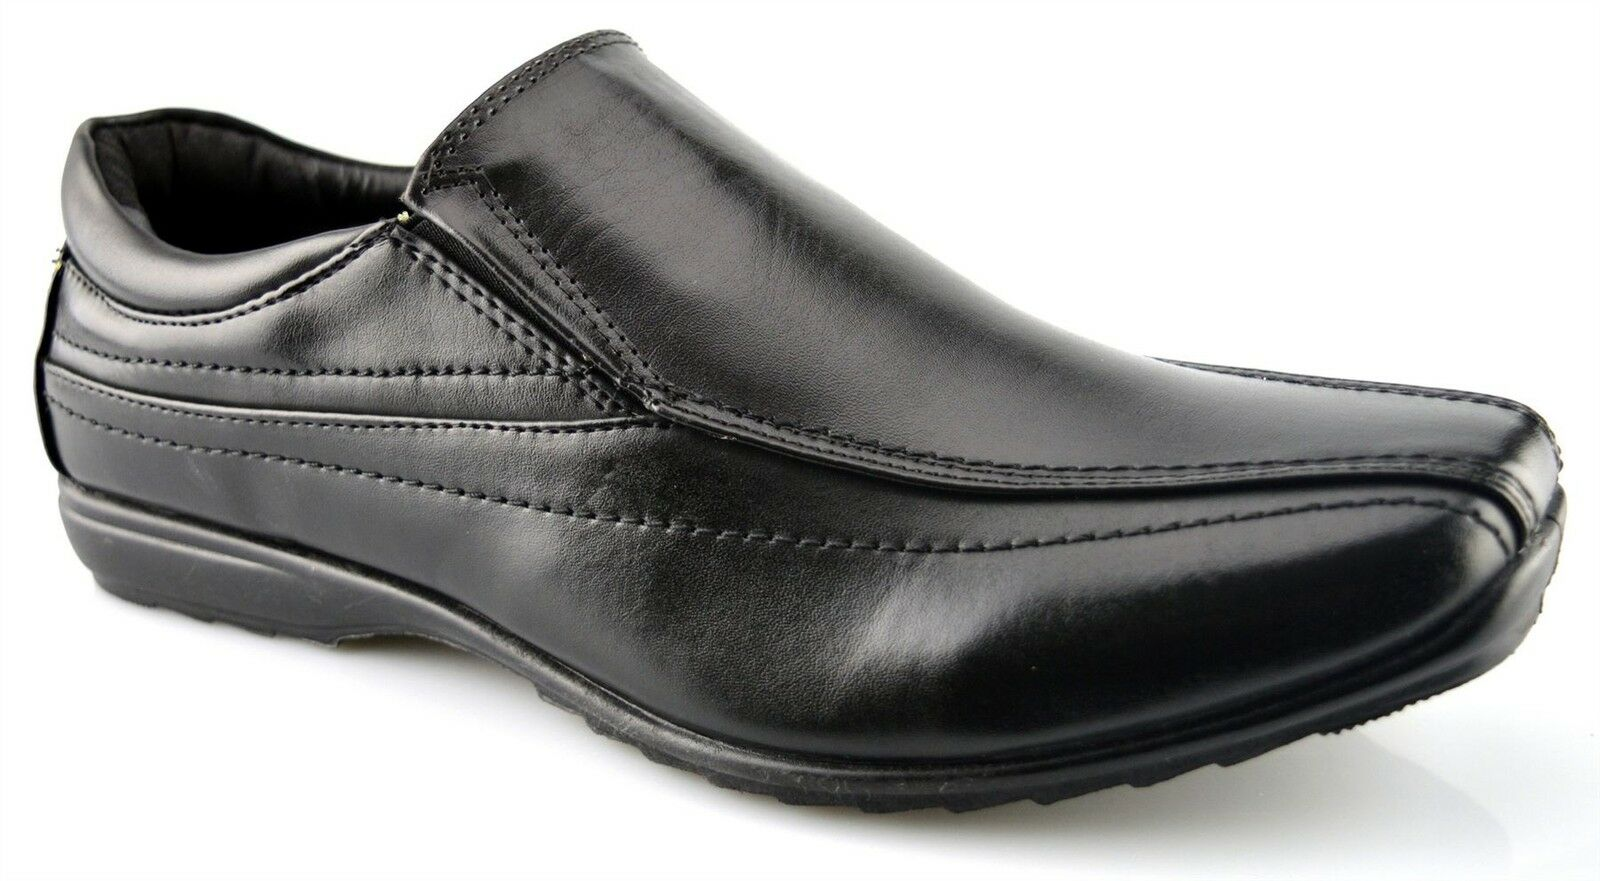 Mens Work New Slip On Office Work Mens Back To School Twin Gusset Formal Shoes Size 7-12 a49dff